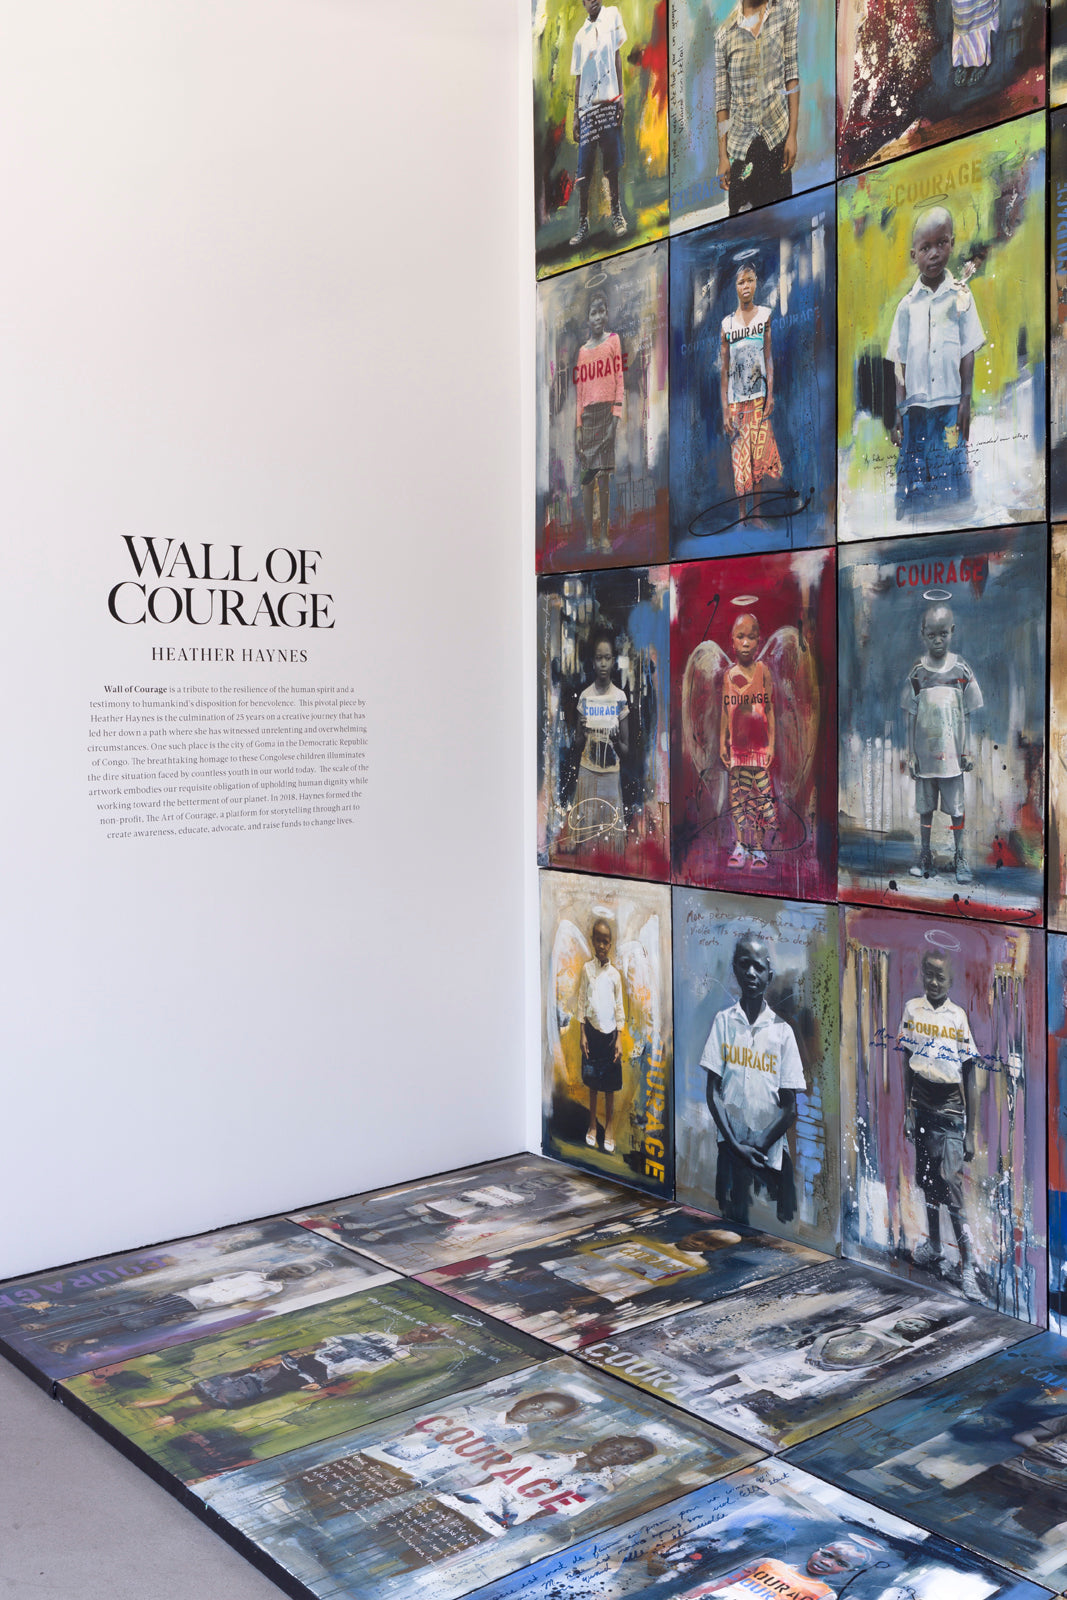 Wall of Courage: Shukuru